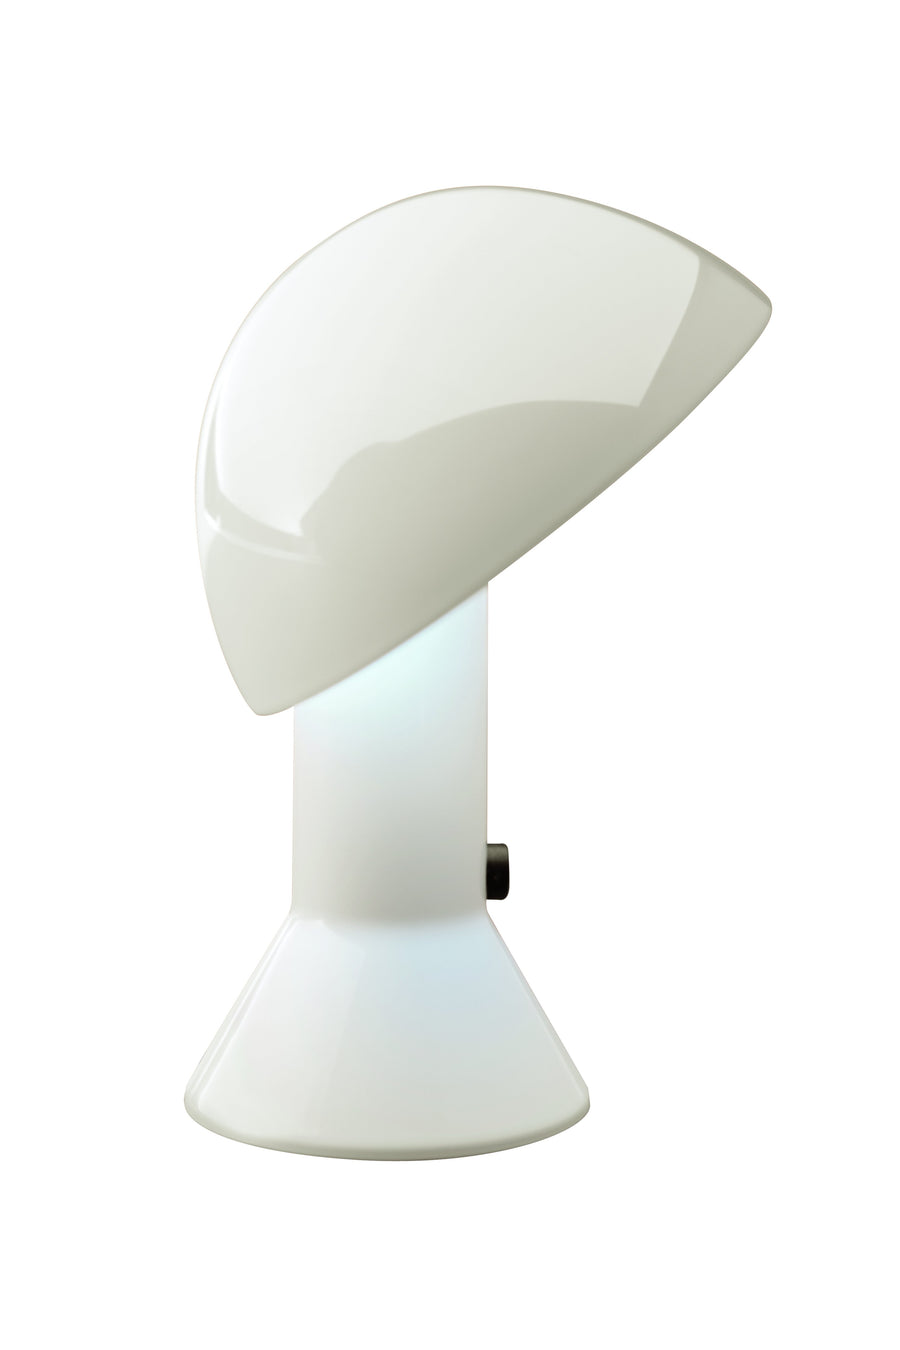 Elmetto Table Lamp in white